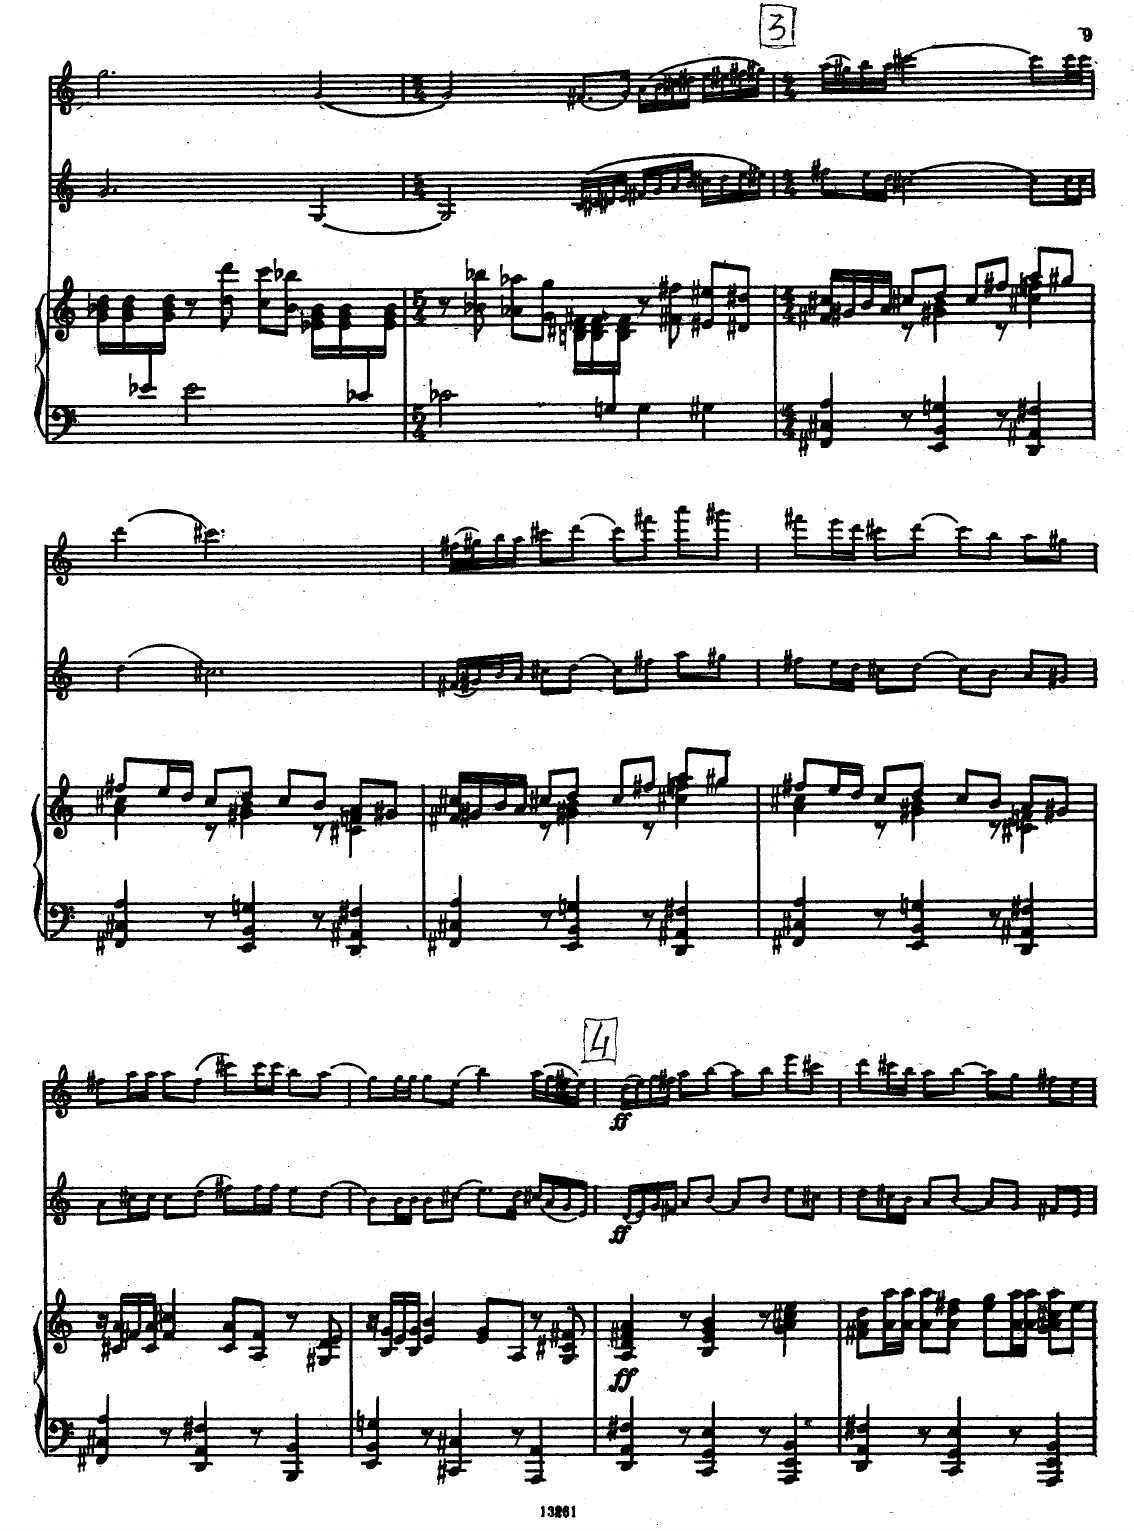 Milhaud - Suite for Violin, Clarinet and Piano